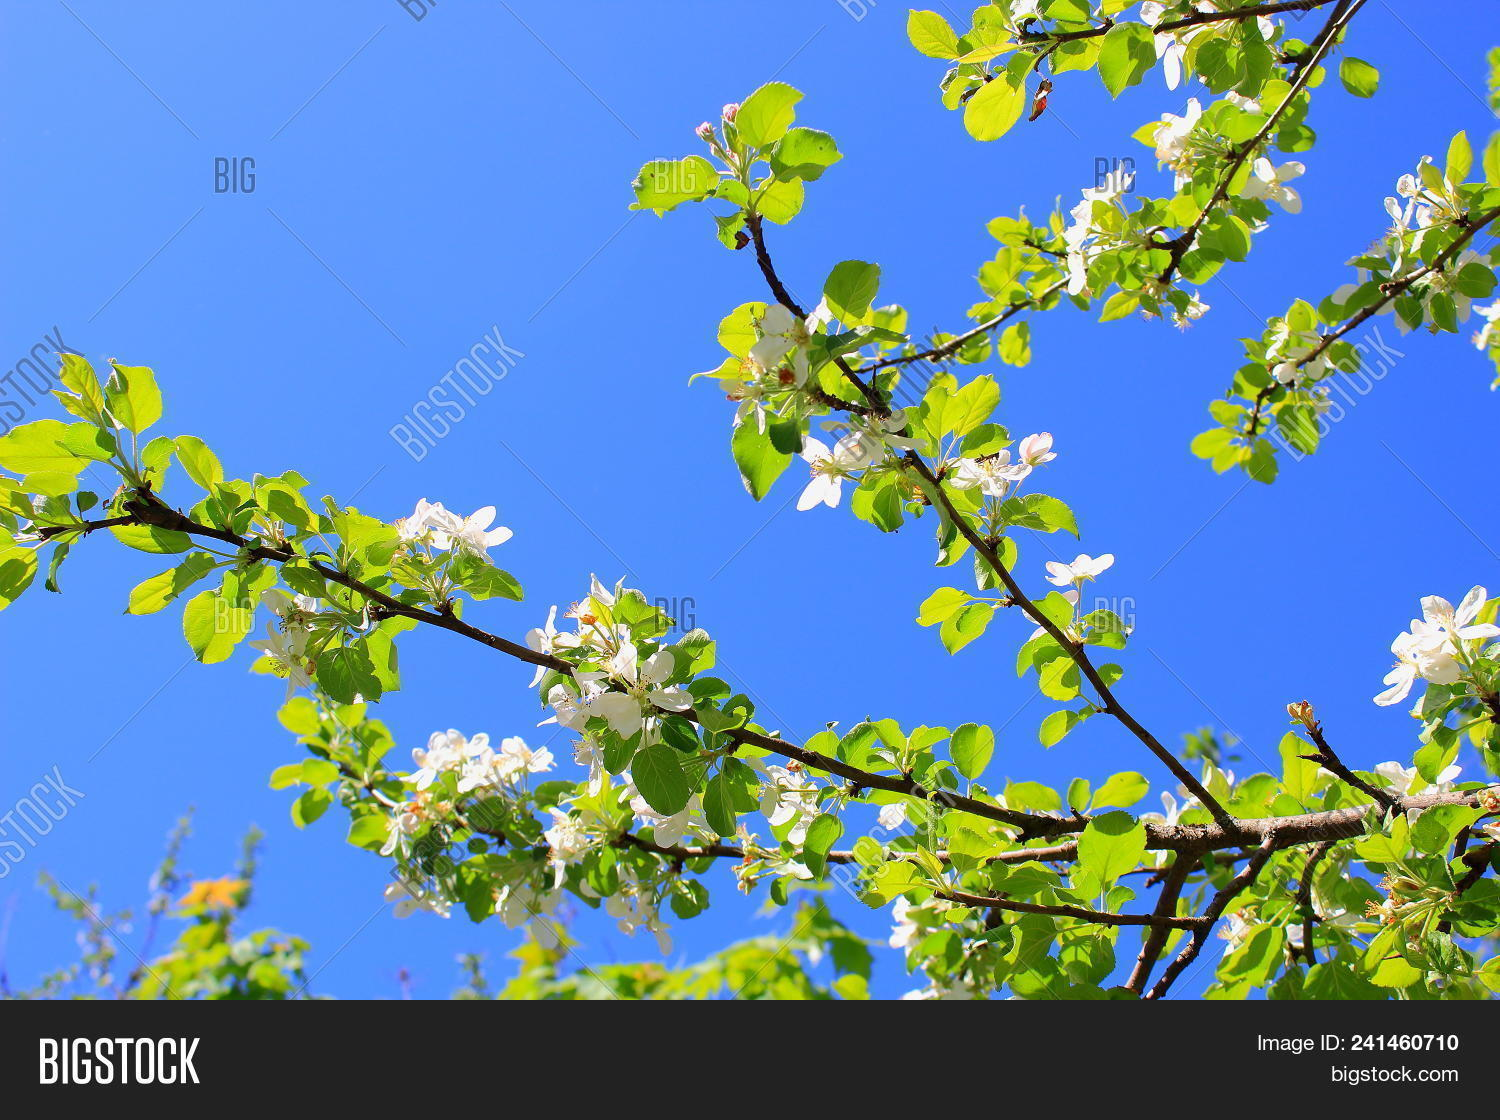 White Flowers On Sky Image Photo Free Trial Bigstock